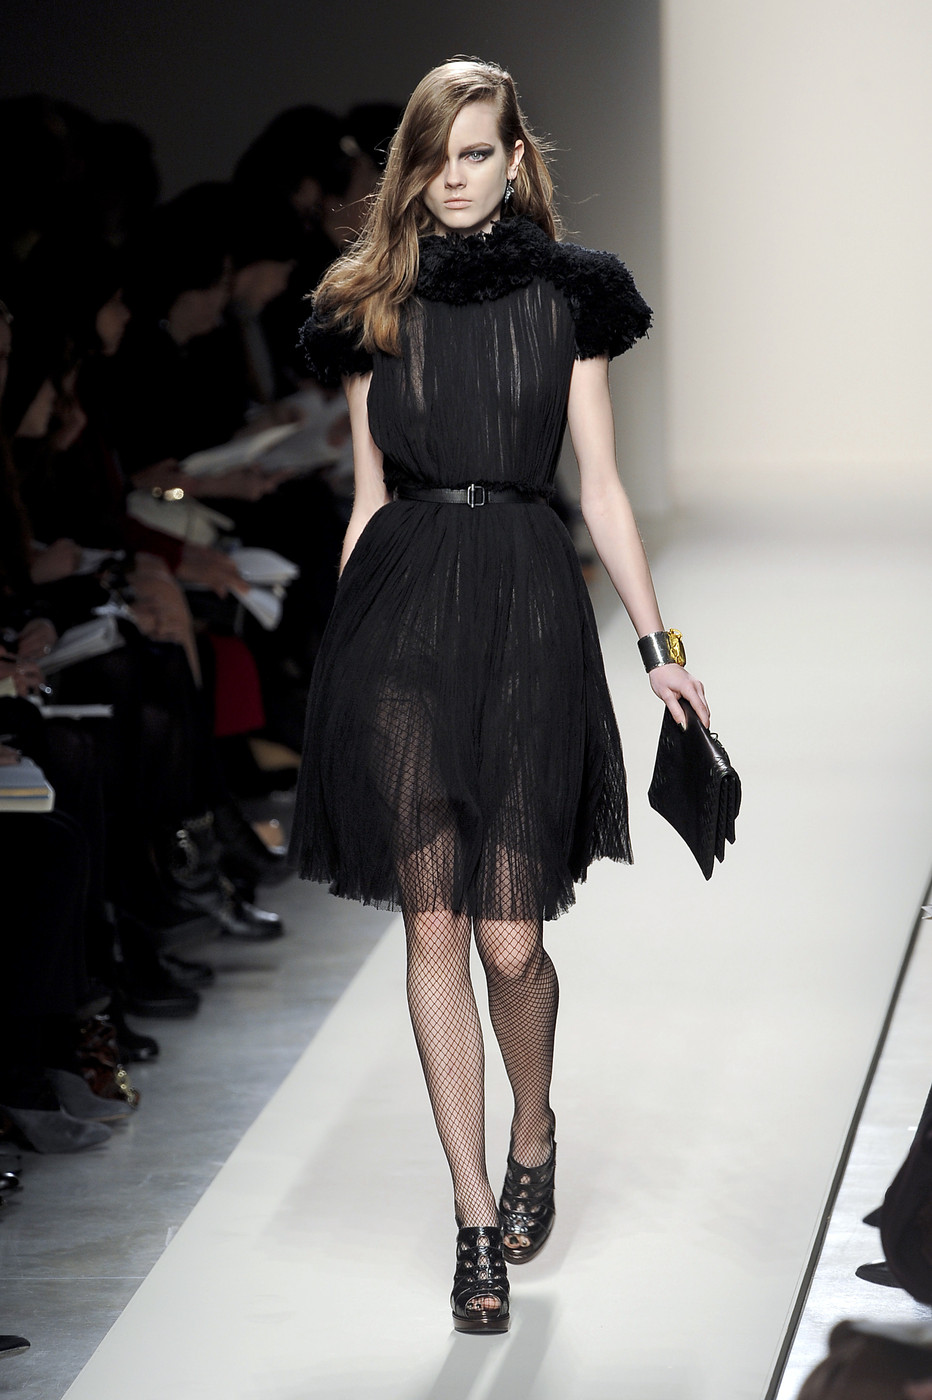 via fashioned by love | bottega veneta fall/winter 2010